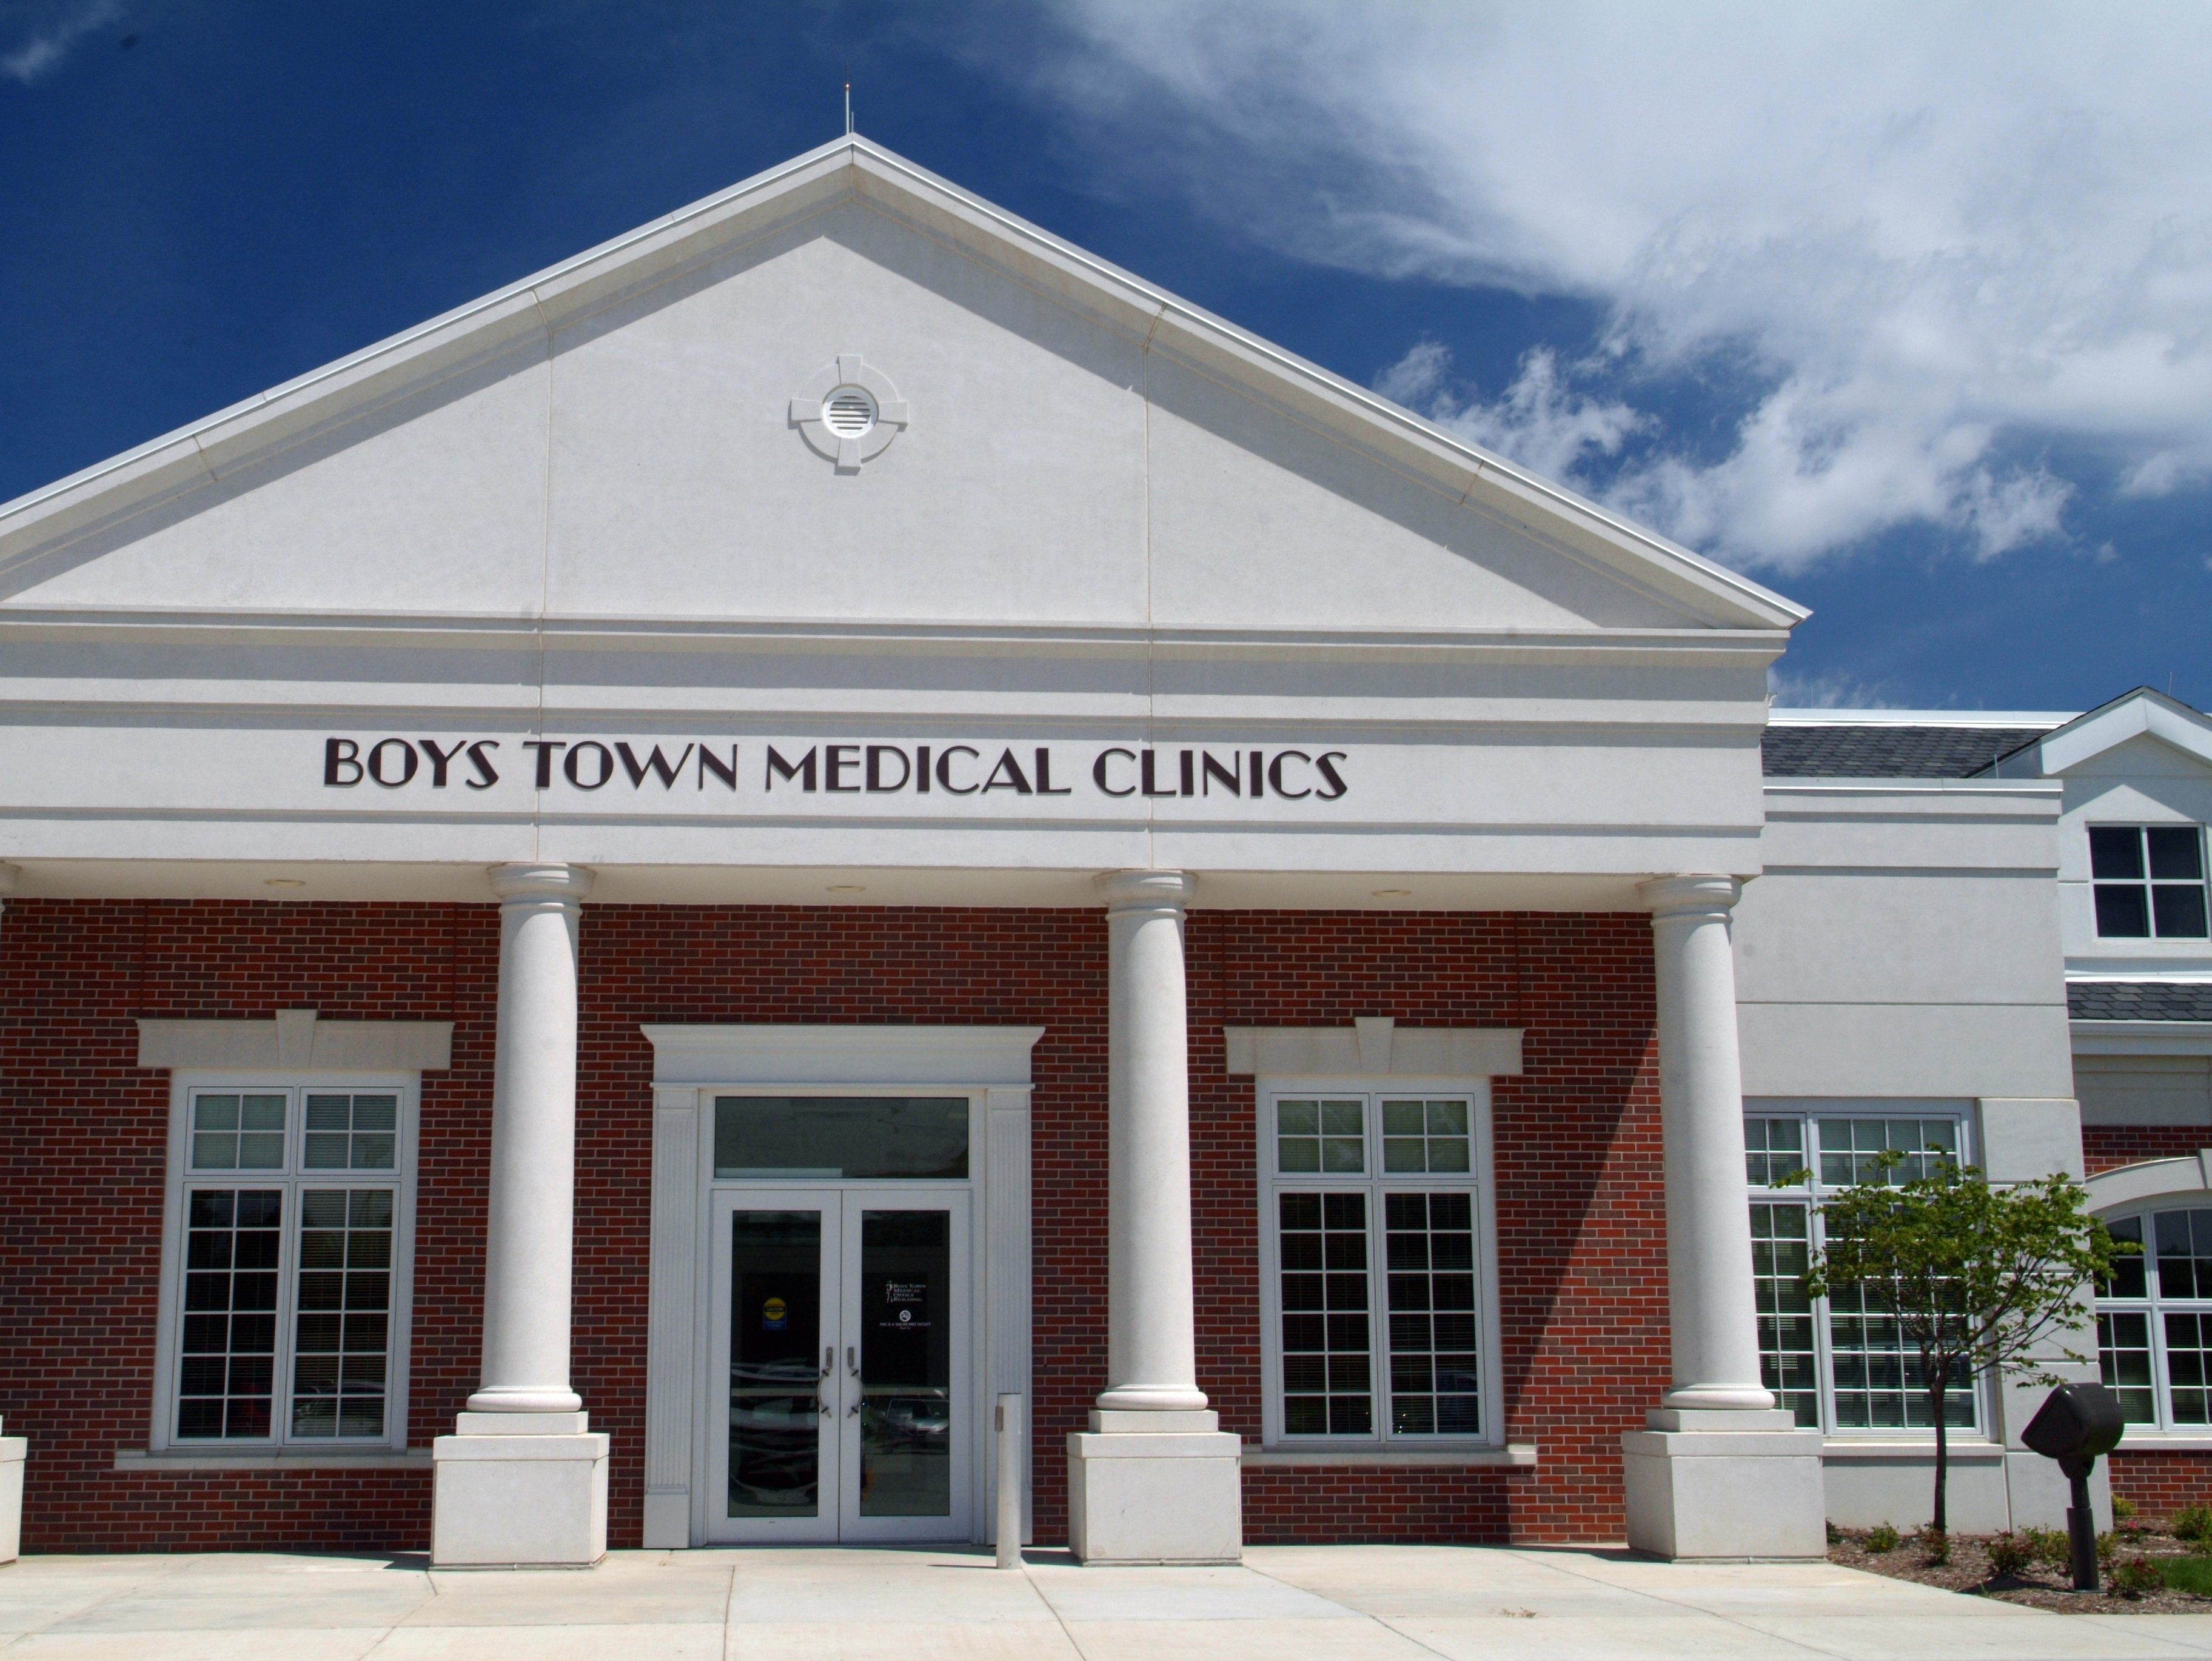 Boys Town Medical Campus - Pacific Street Specialty Clinic / Inpatient Unit Image